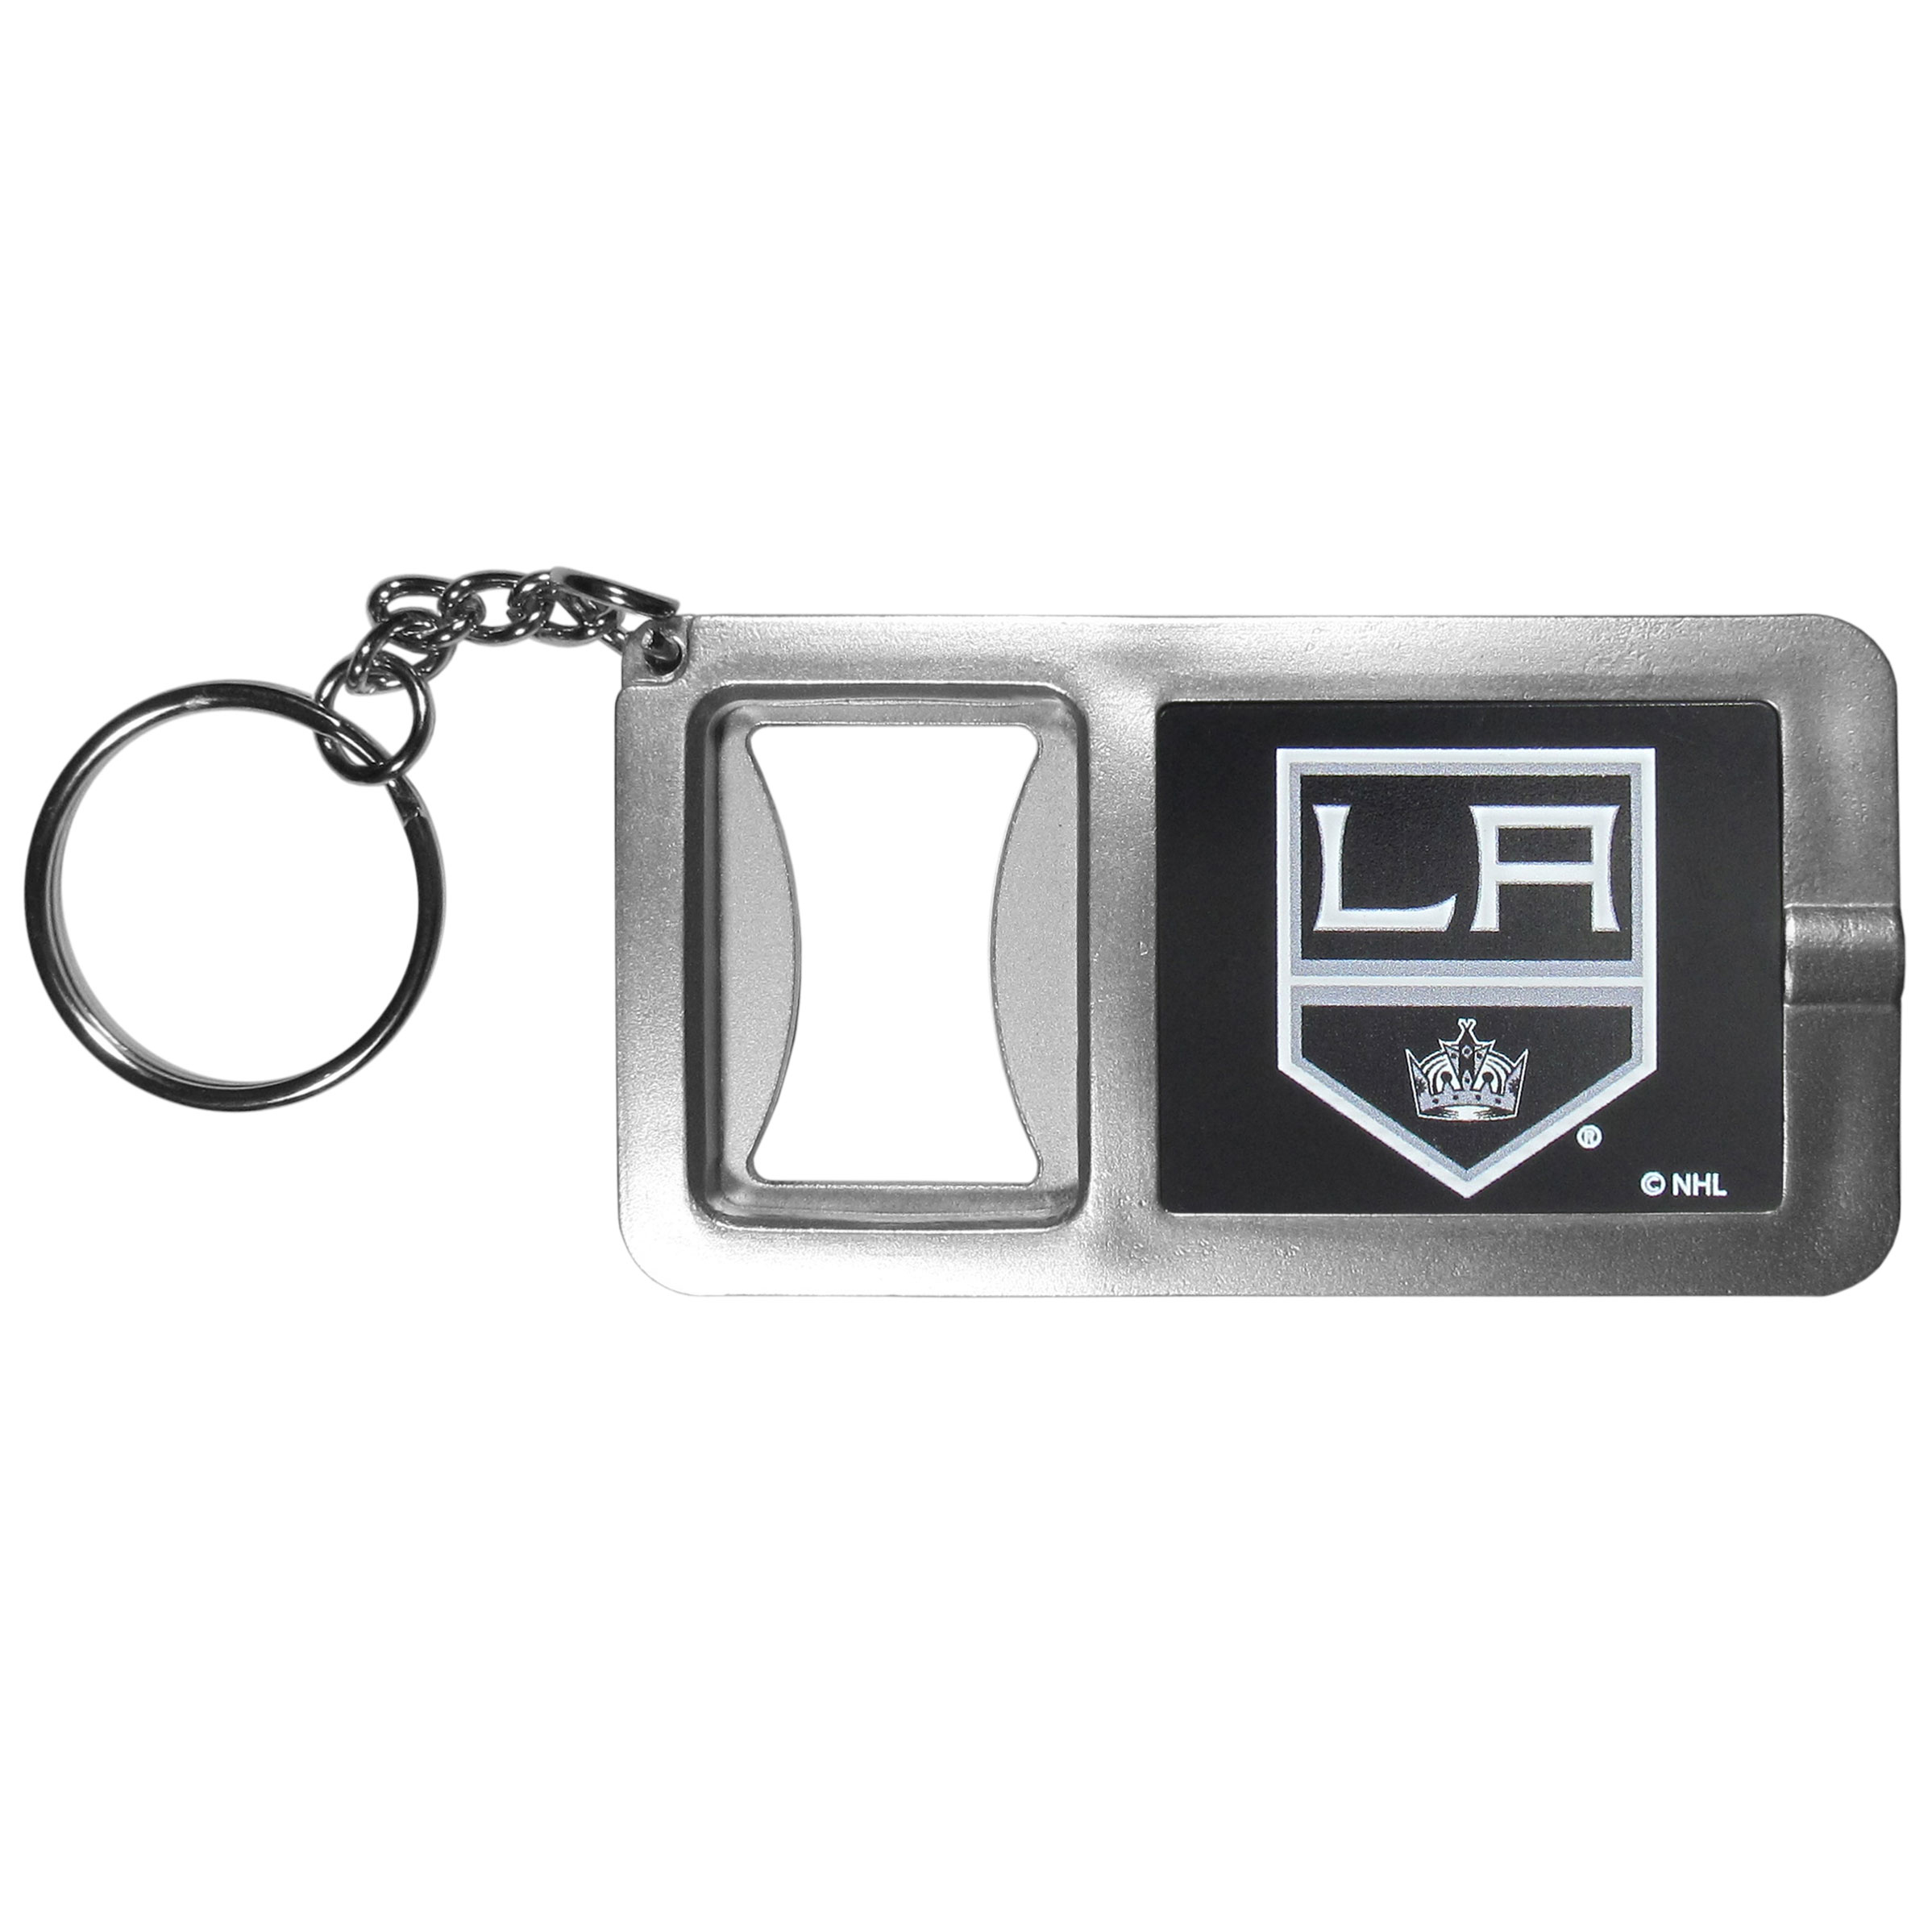 Los Angeles Kings® Flashlight Key Chain with Bottle Opener - Never be without light with our Los Angeles Kings® flashlight keychain that features a handy bottle opener feature. This versatile key chain is perfect for camping and travel and is a great way to show off your team pride!